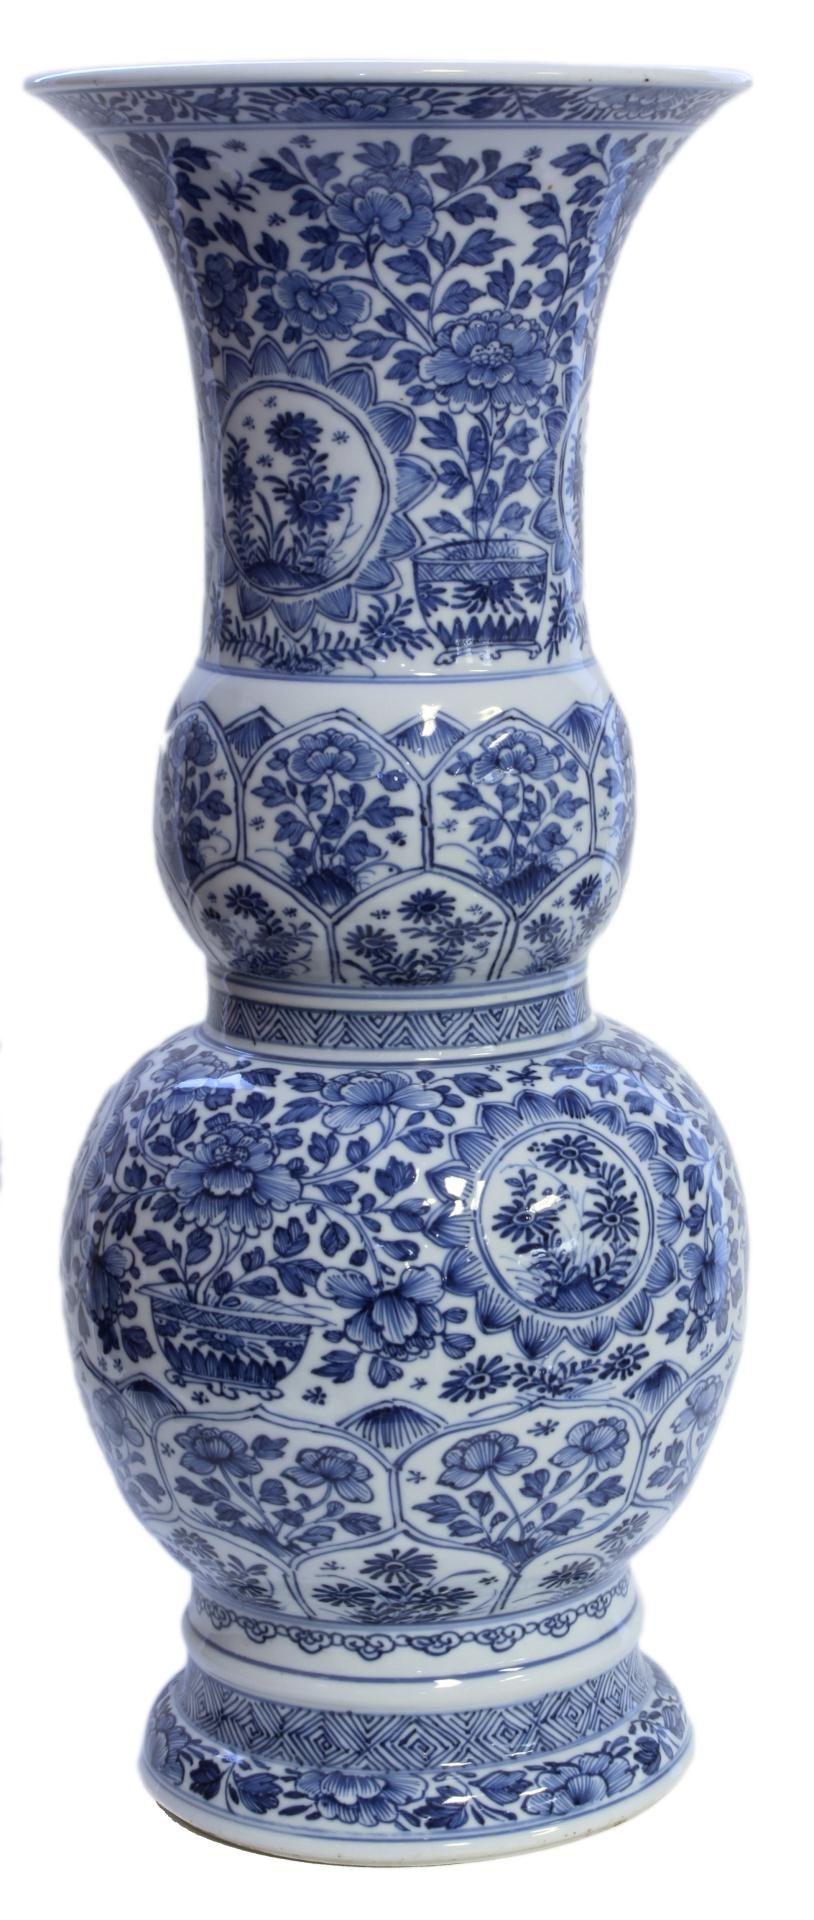 Chinese blue white kangxi period porcelain vase blue white chinese hand painted blue and white vase vase depicting flowers throughout with stylized lotus blossom leaf designs reviewsmspy